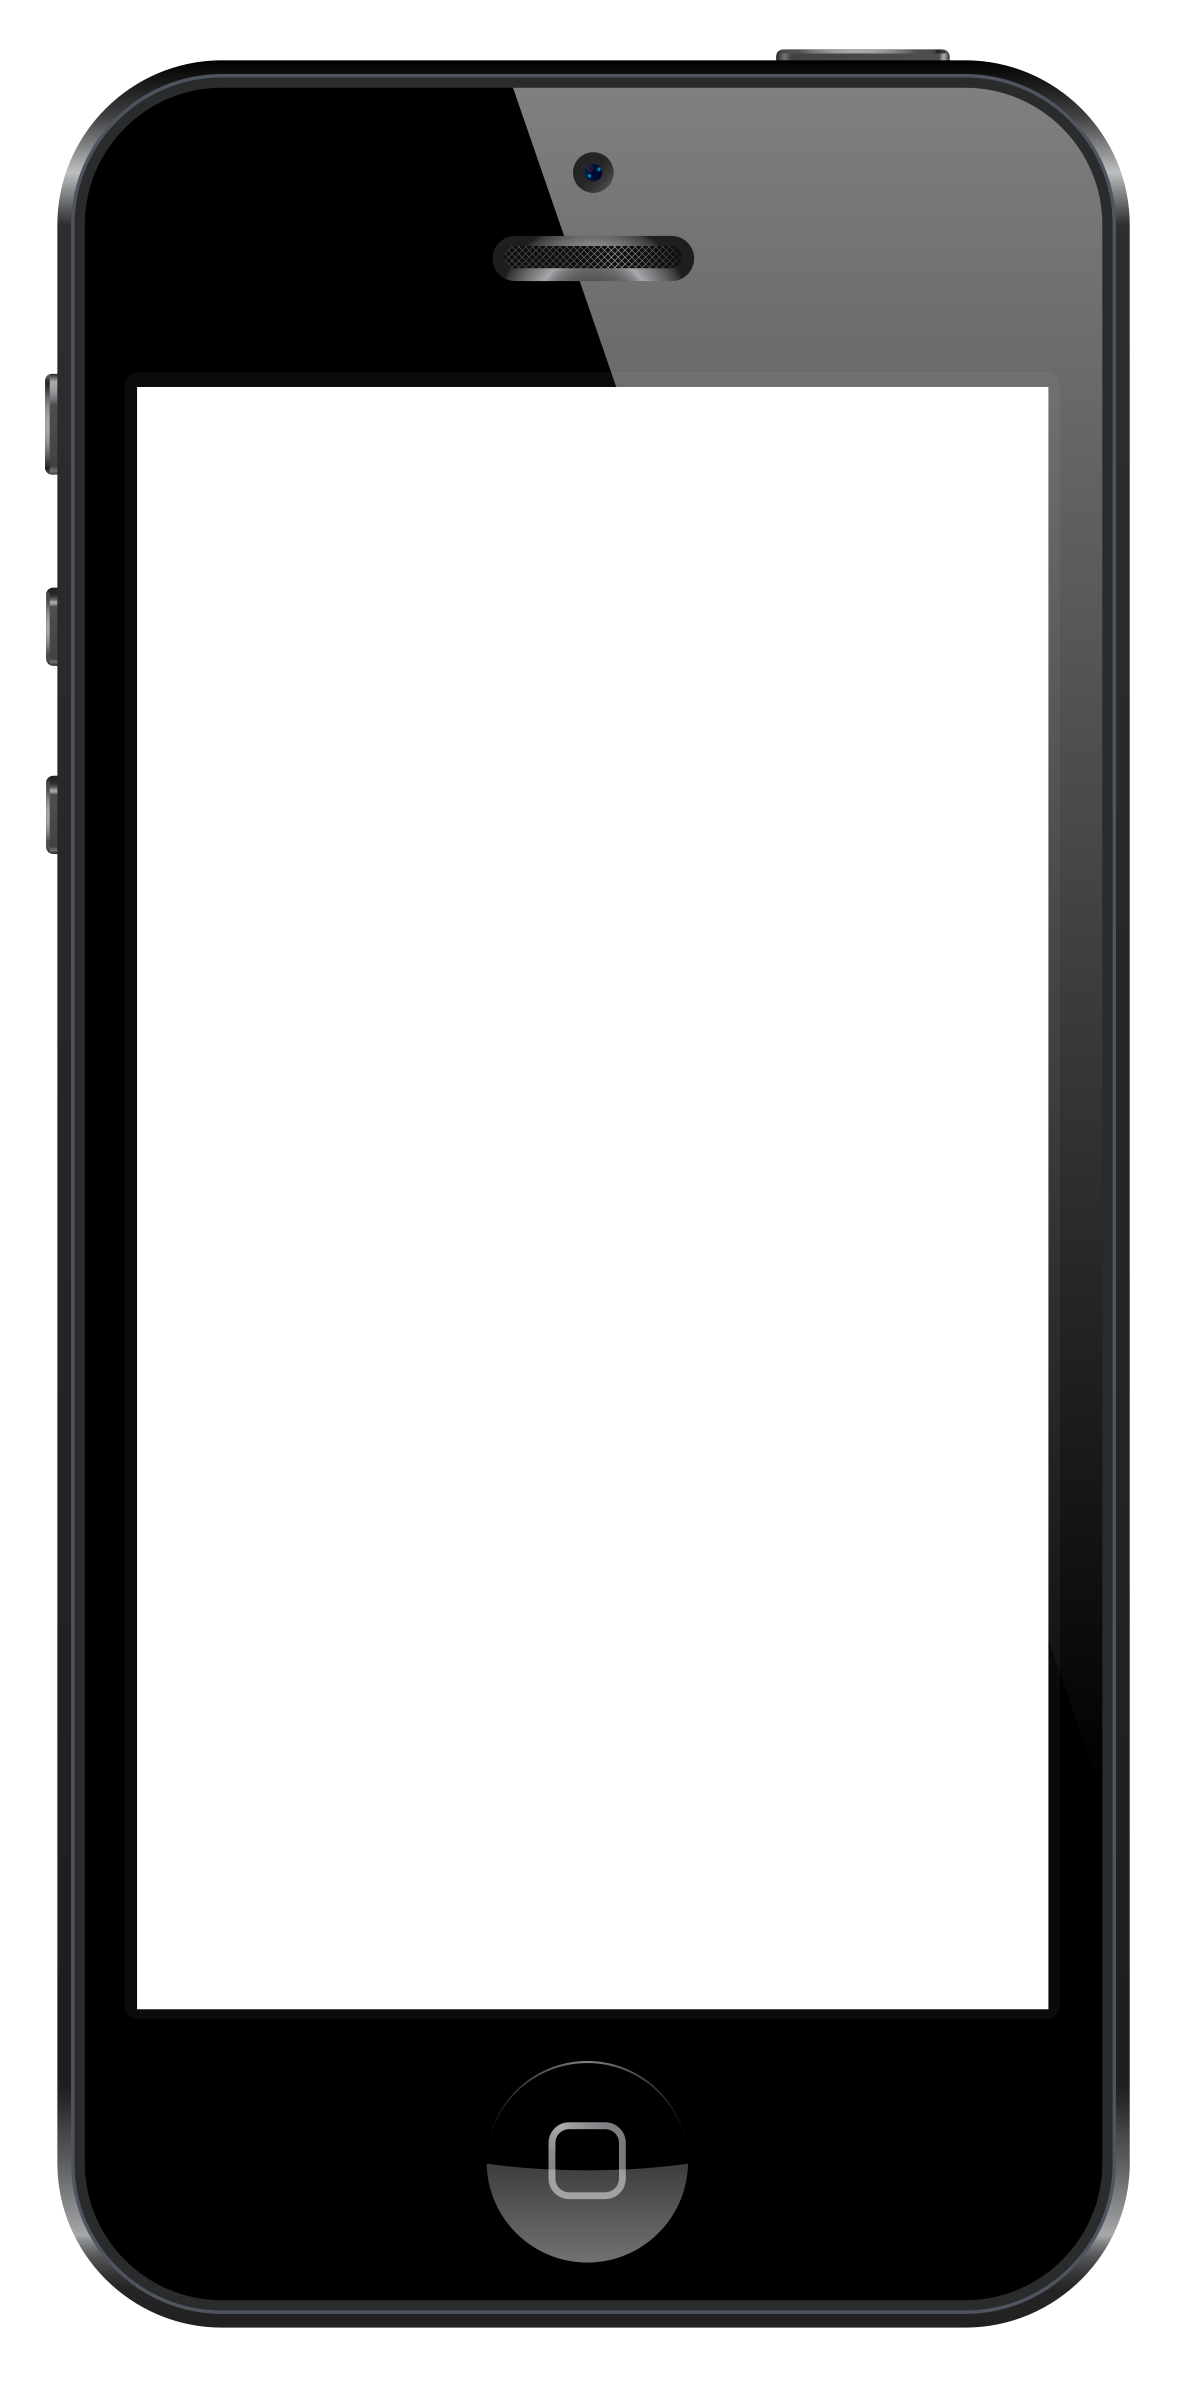 1193x2400 Free Smartphone Clipart Black And White Image